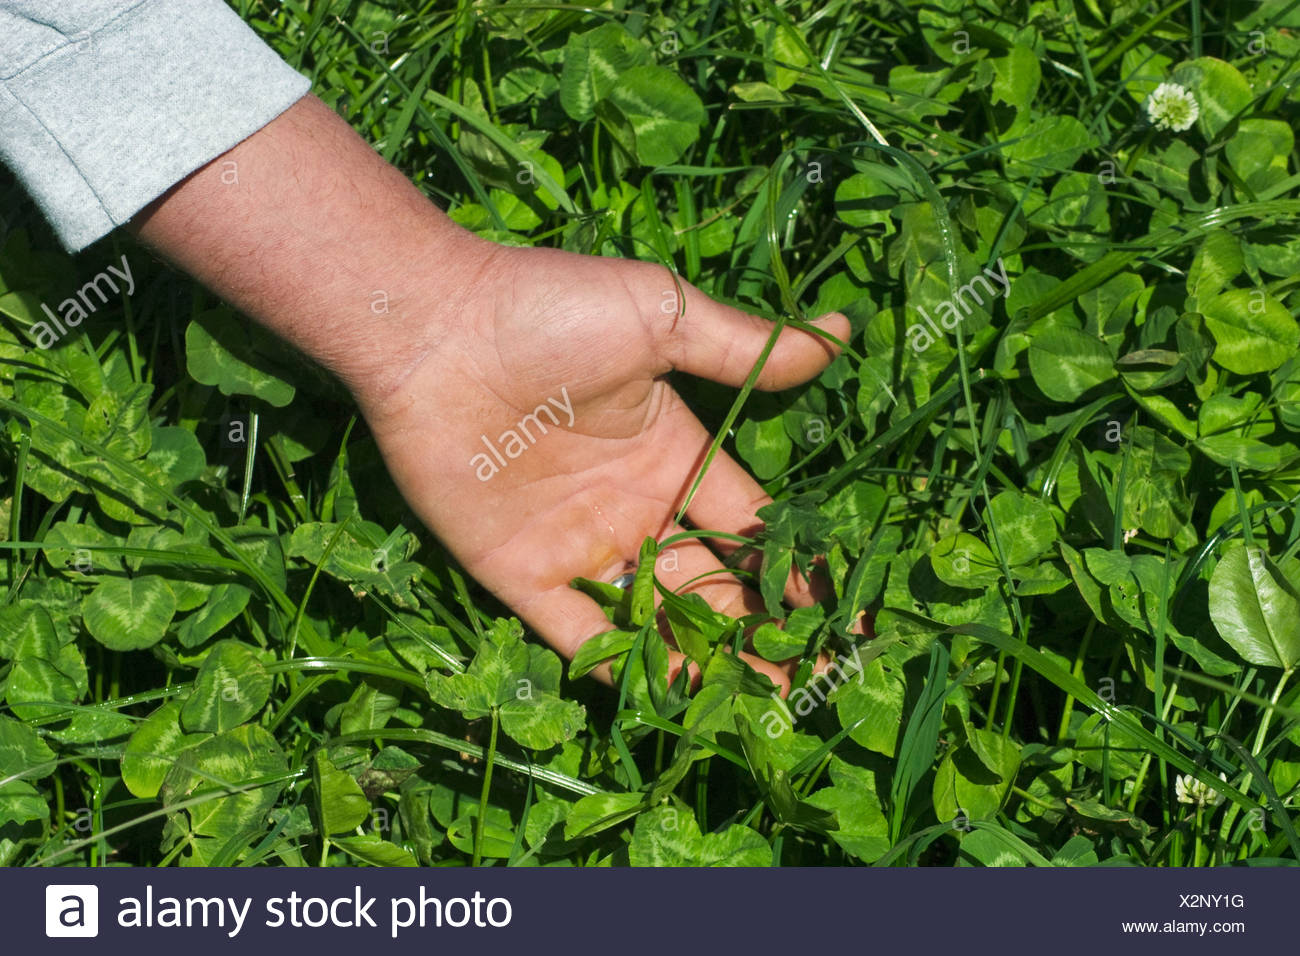 A dairy producers hand in clover at an organic dairy. The clover is grown as part of an intensive grazing program / California. - Stock Image